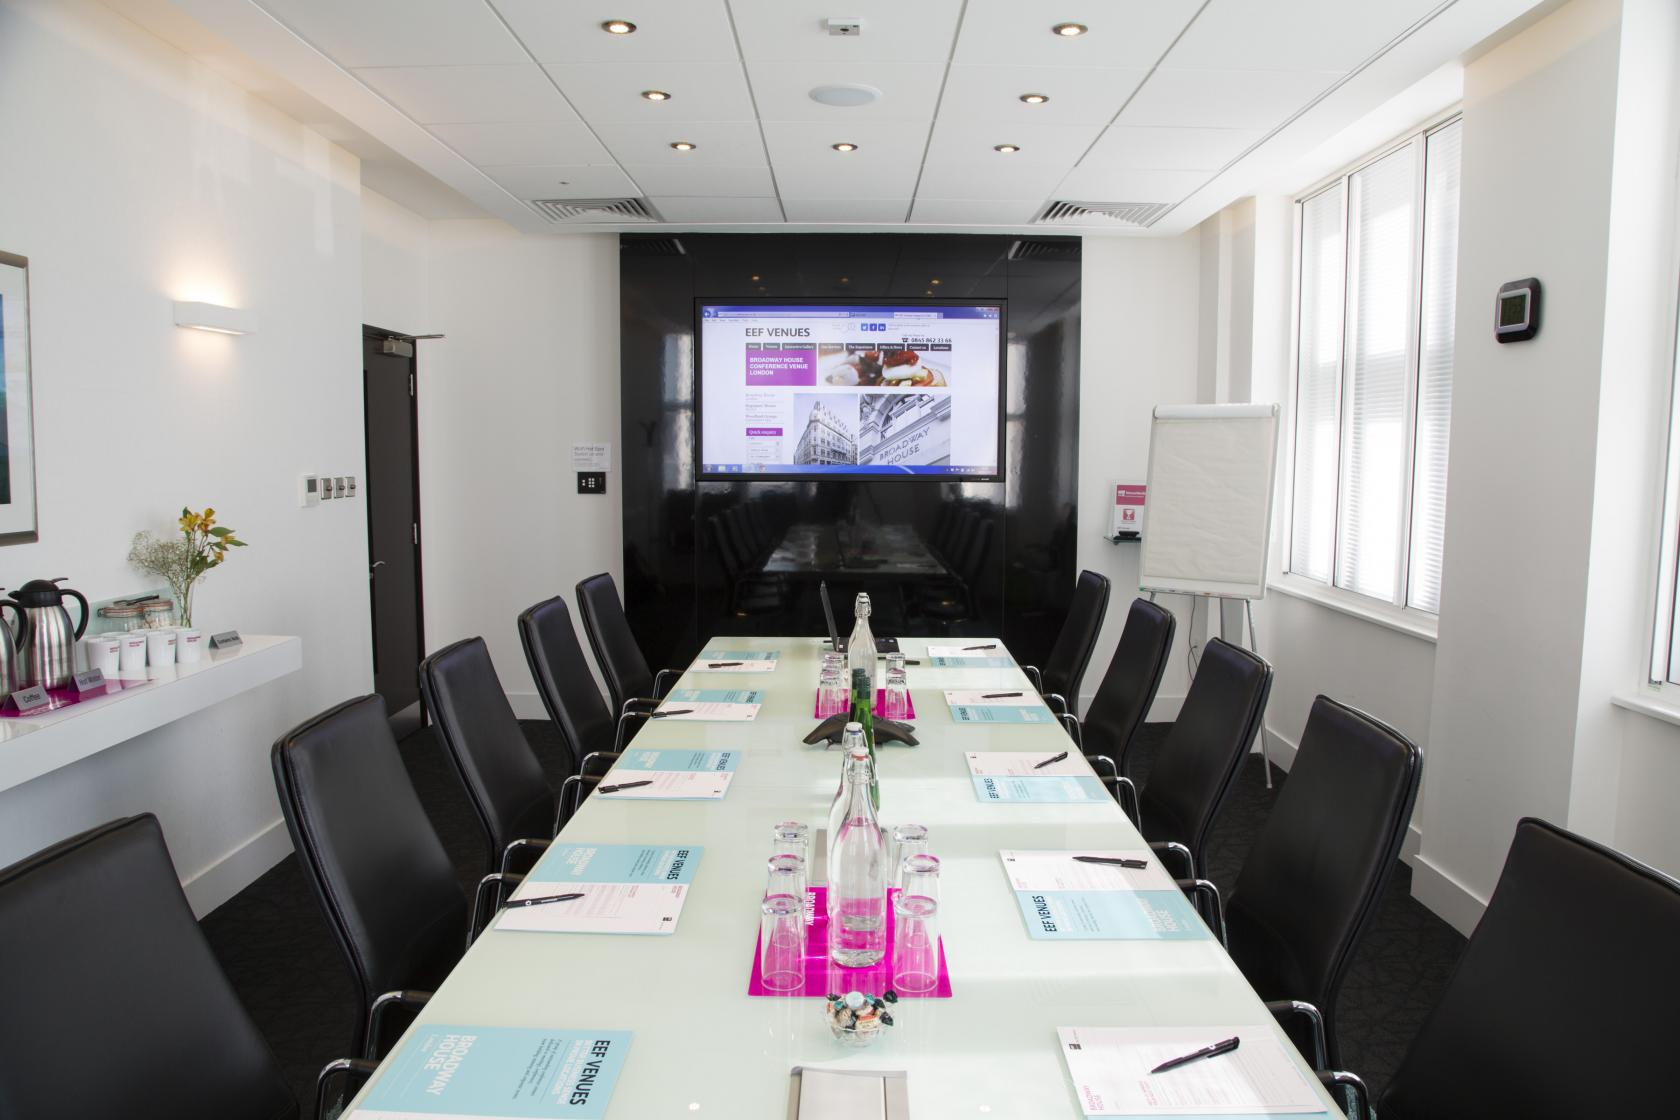 Situated in the heart of Westminster, Broadway House is a prestigious Edwardian-style conference venue with a distinctly modern feel.